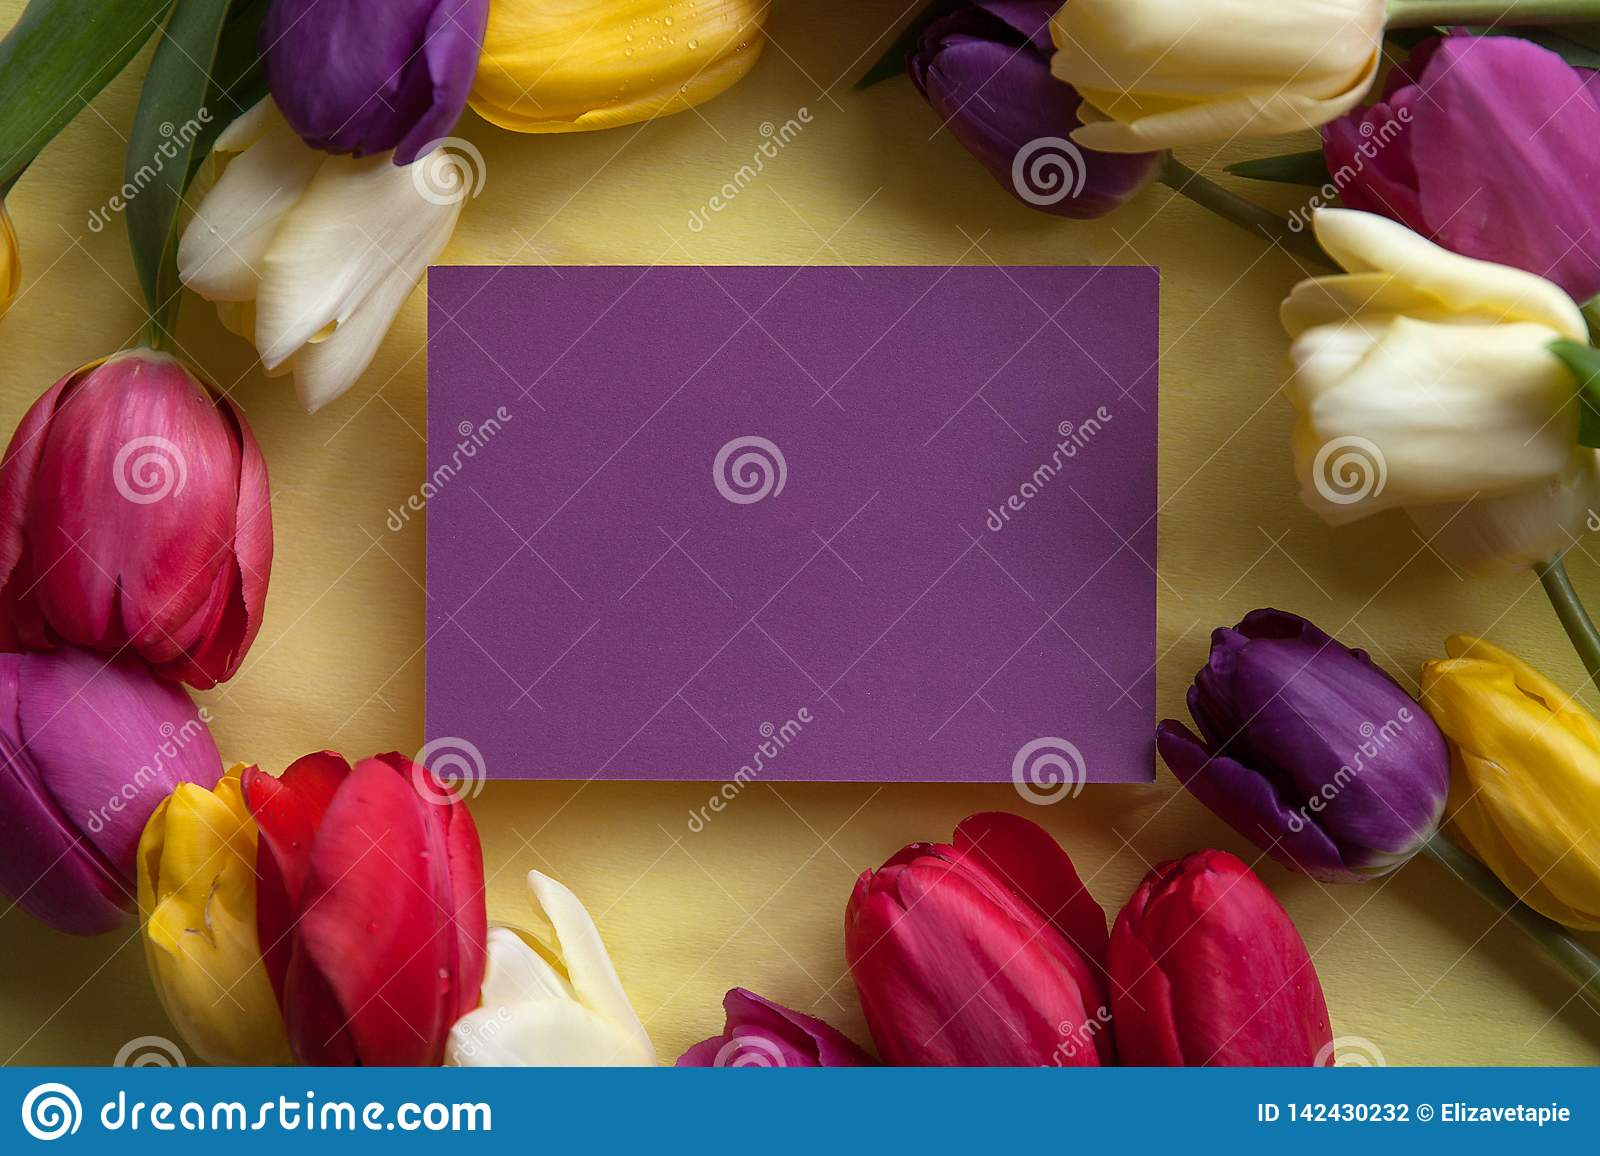 Flowers and a place for text